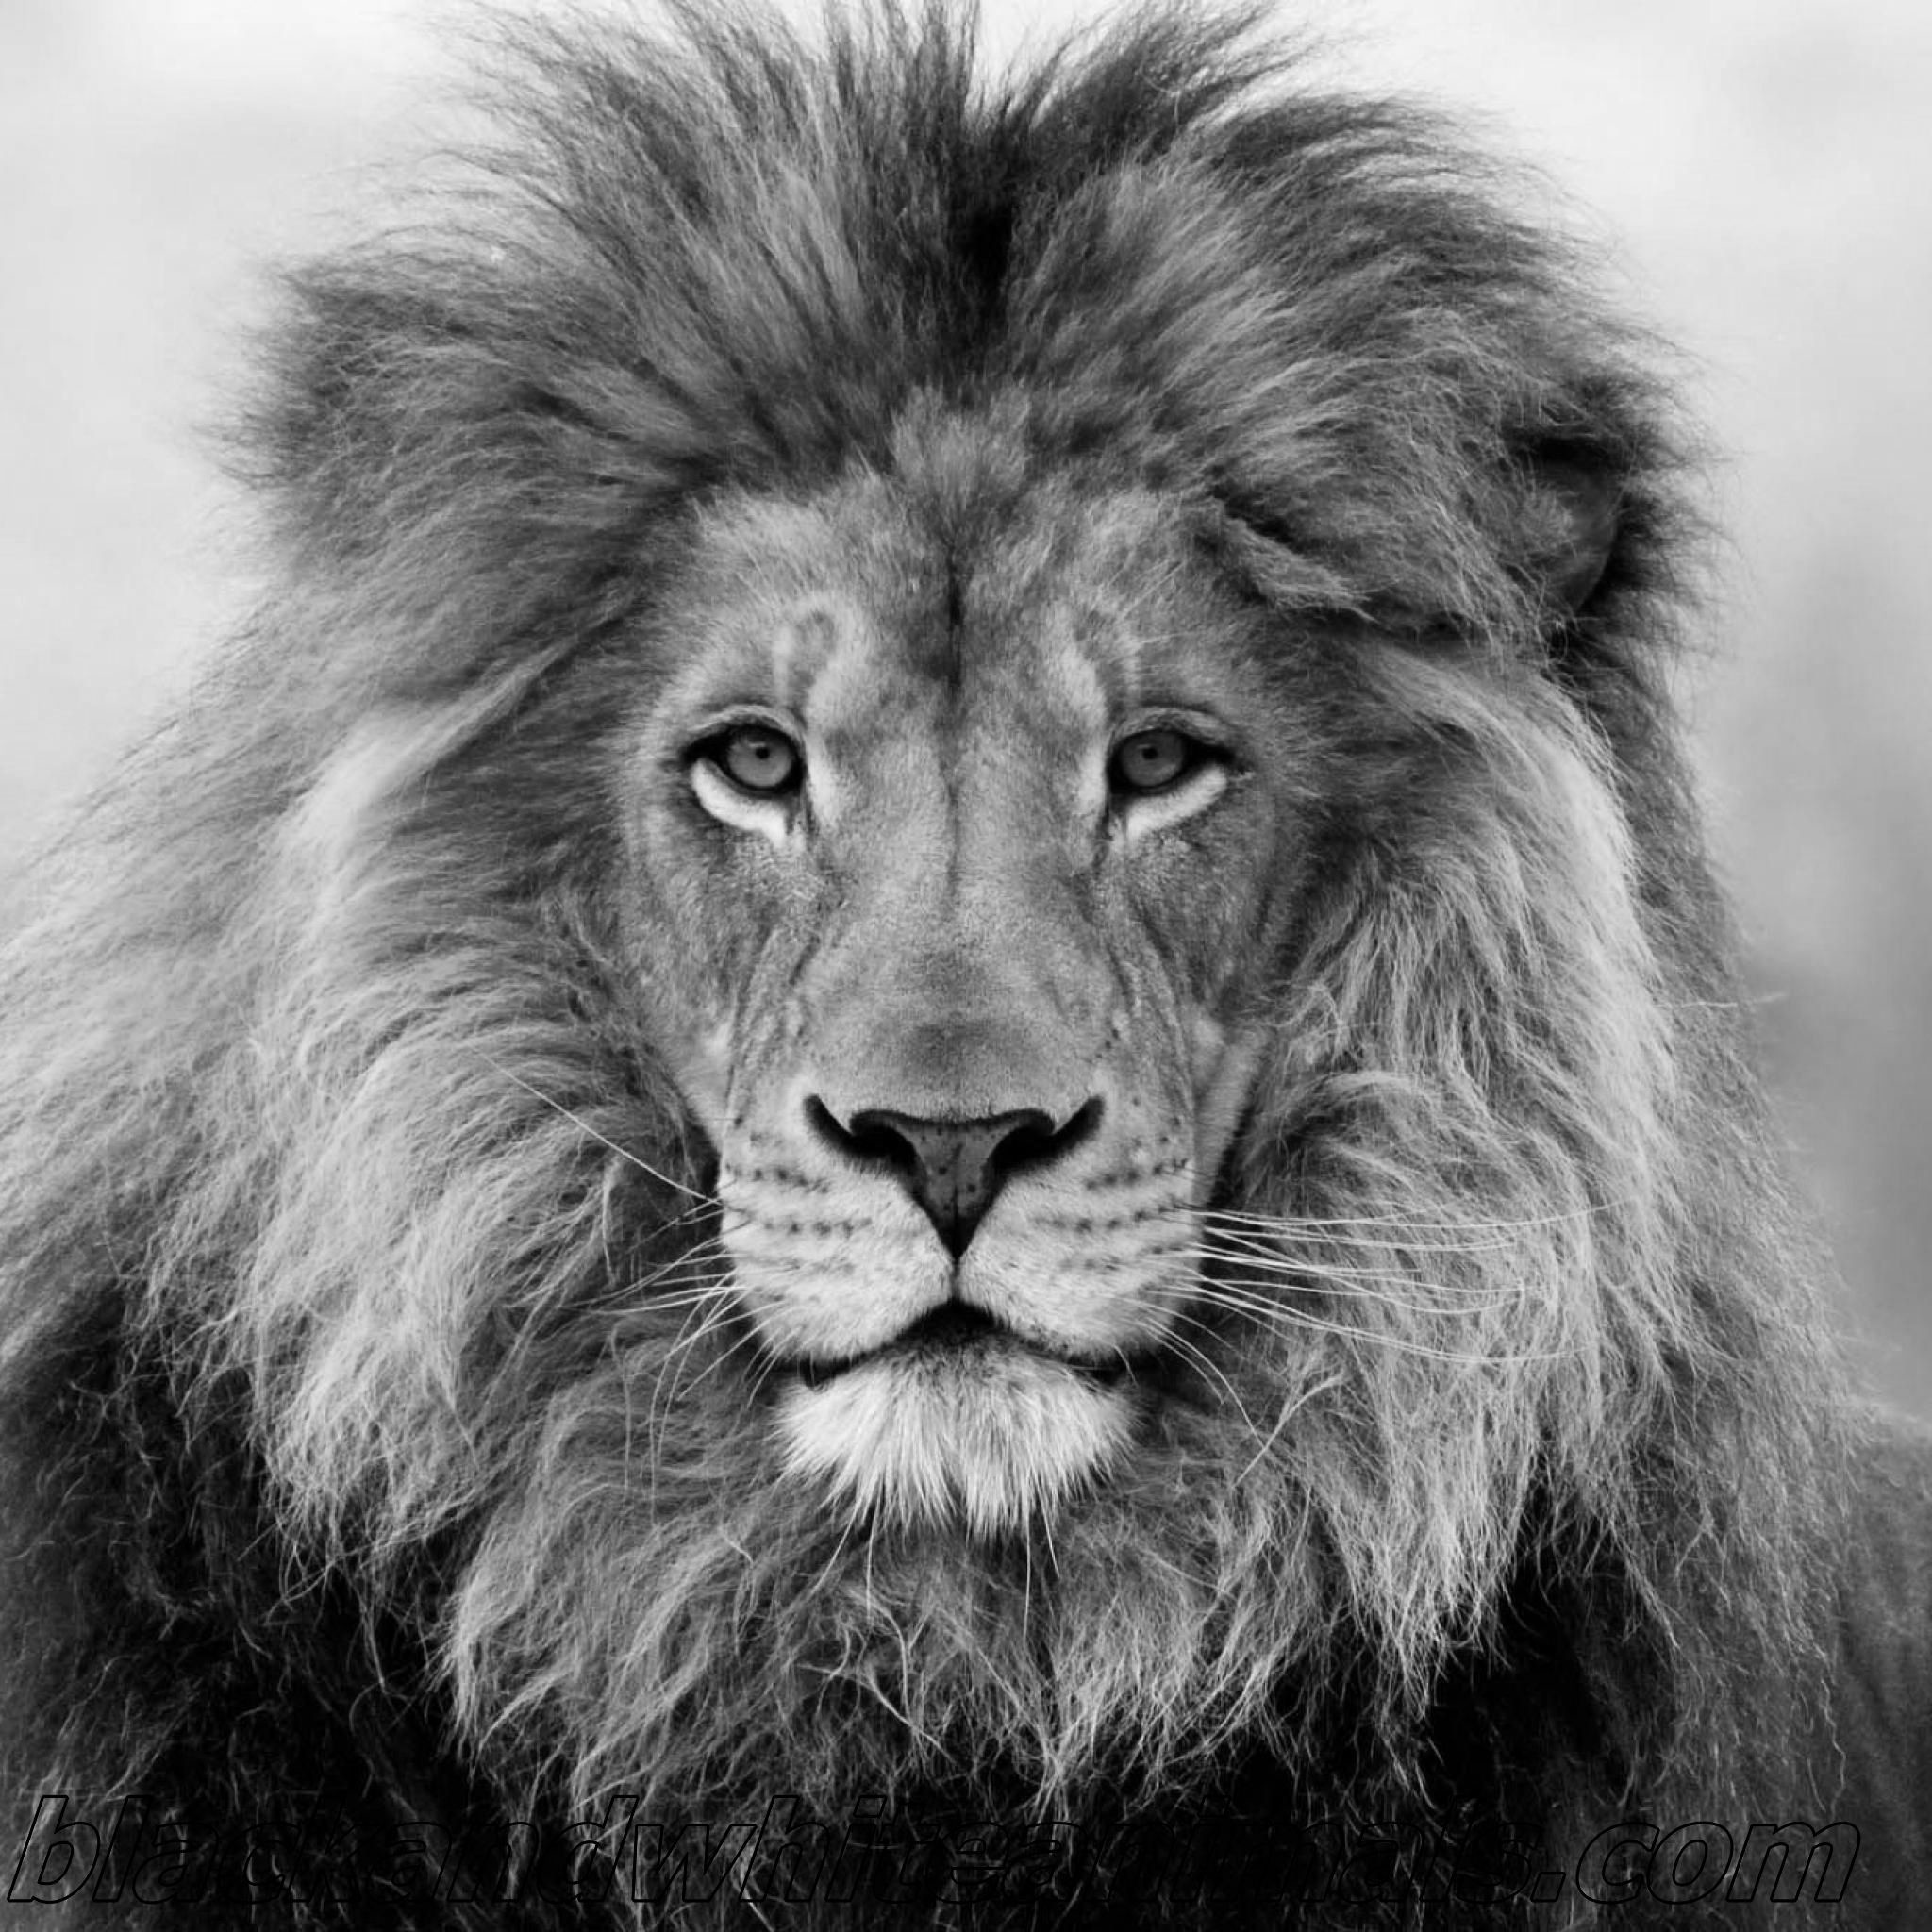 45 Lion Wallpaper Black And White Android Iphone Desktop Hd Backgrounds Wallpapers 1080p 4k 2048x2048 2020